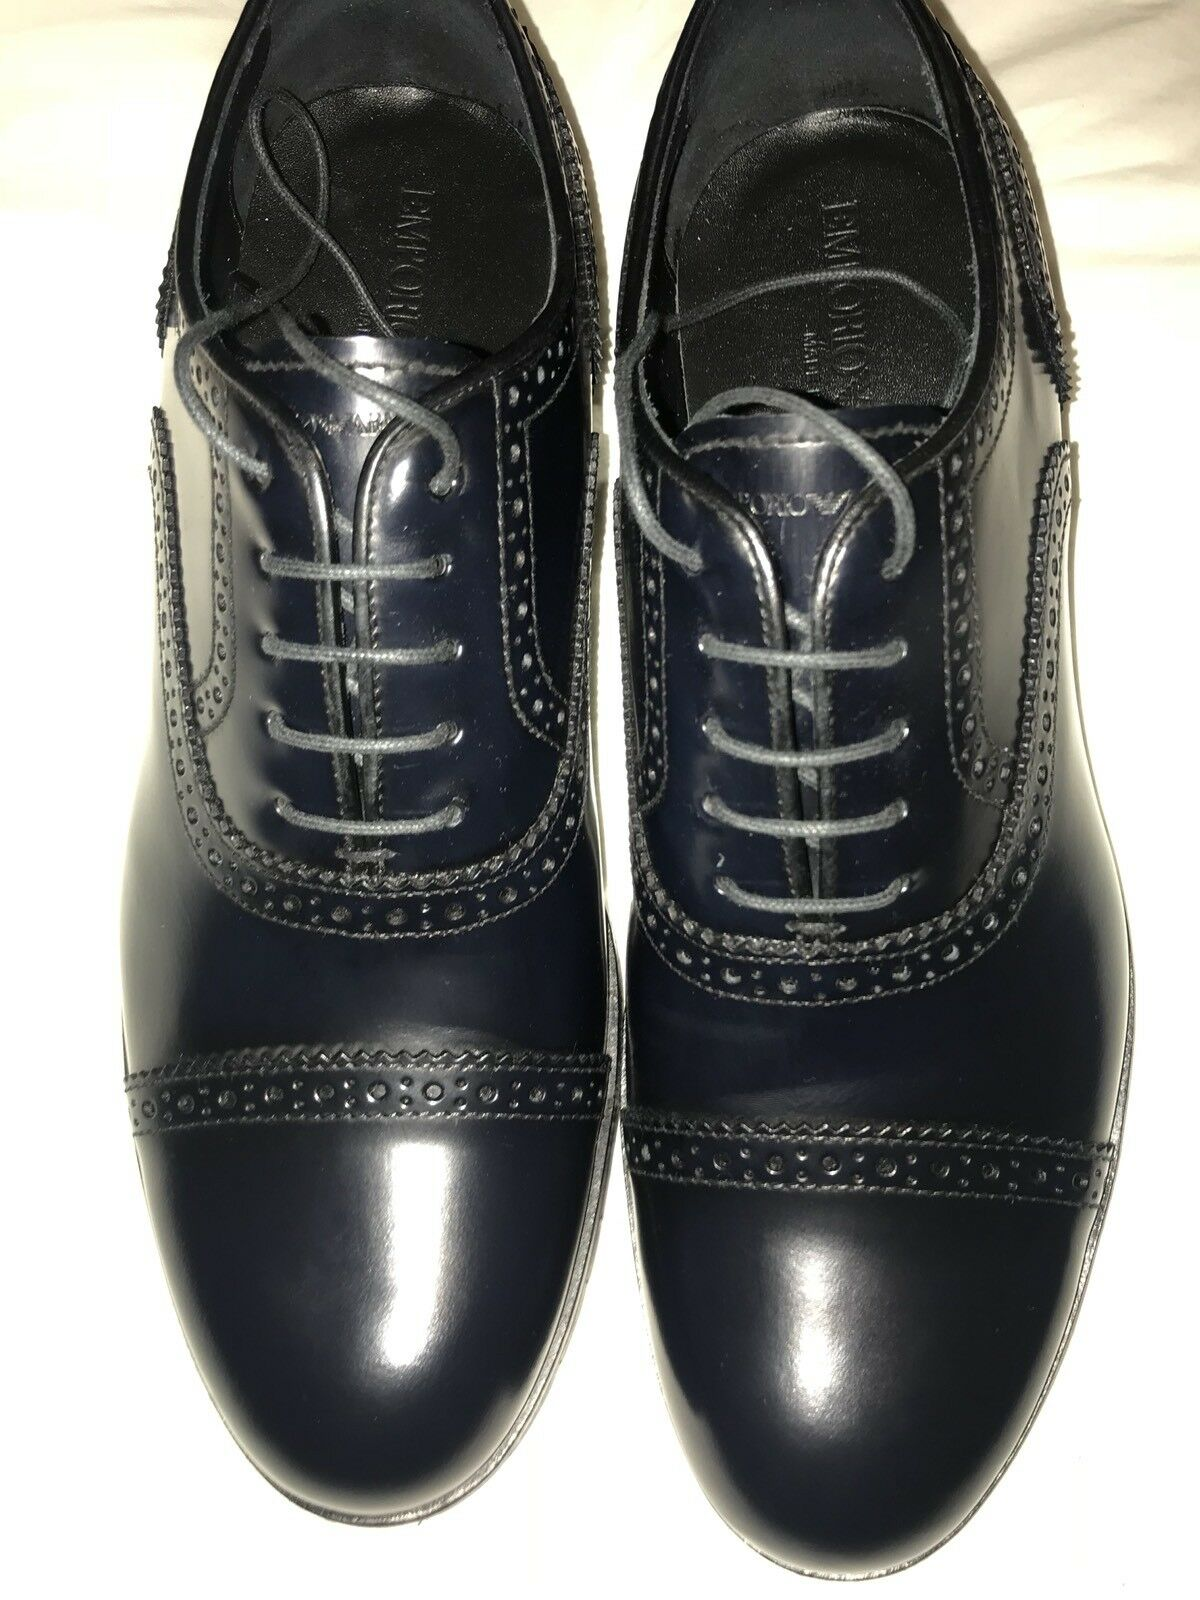 Emporio Armani Mens Leather schuhe schuhe schuhe Navy 7 41 New ee86a3